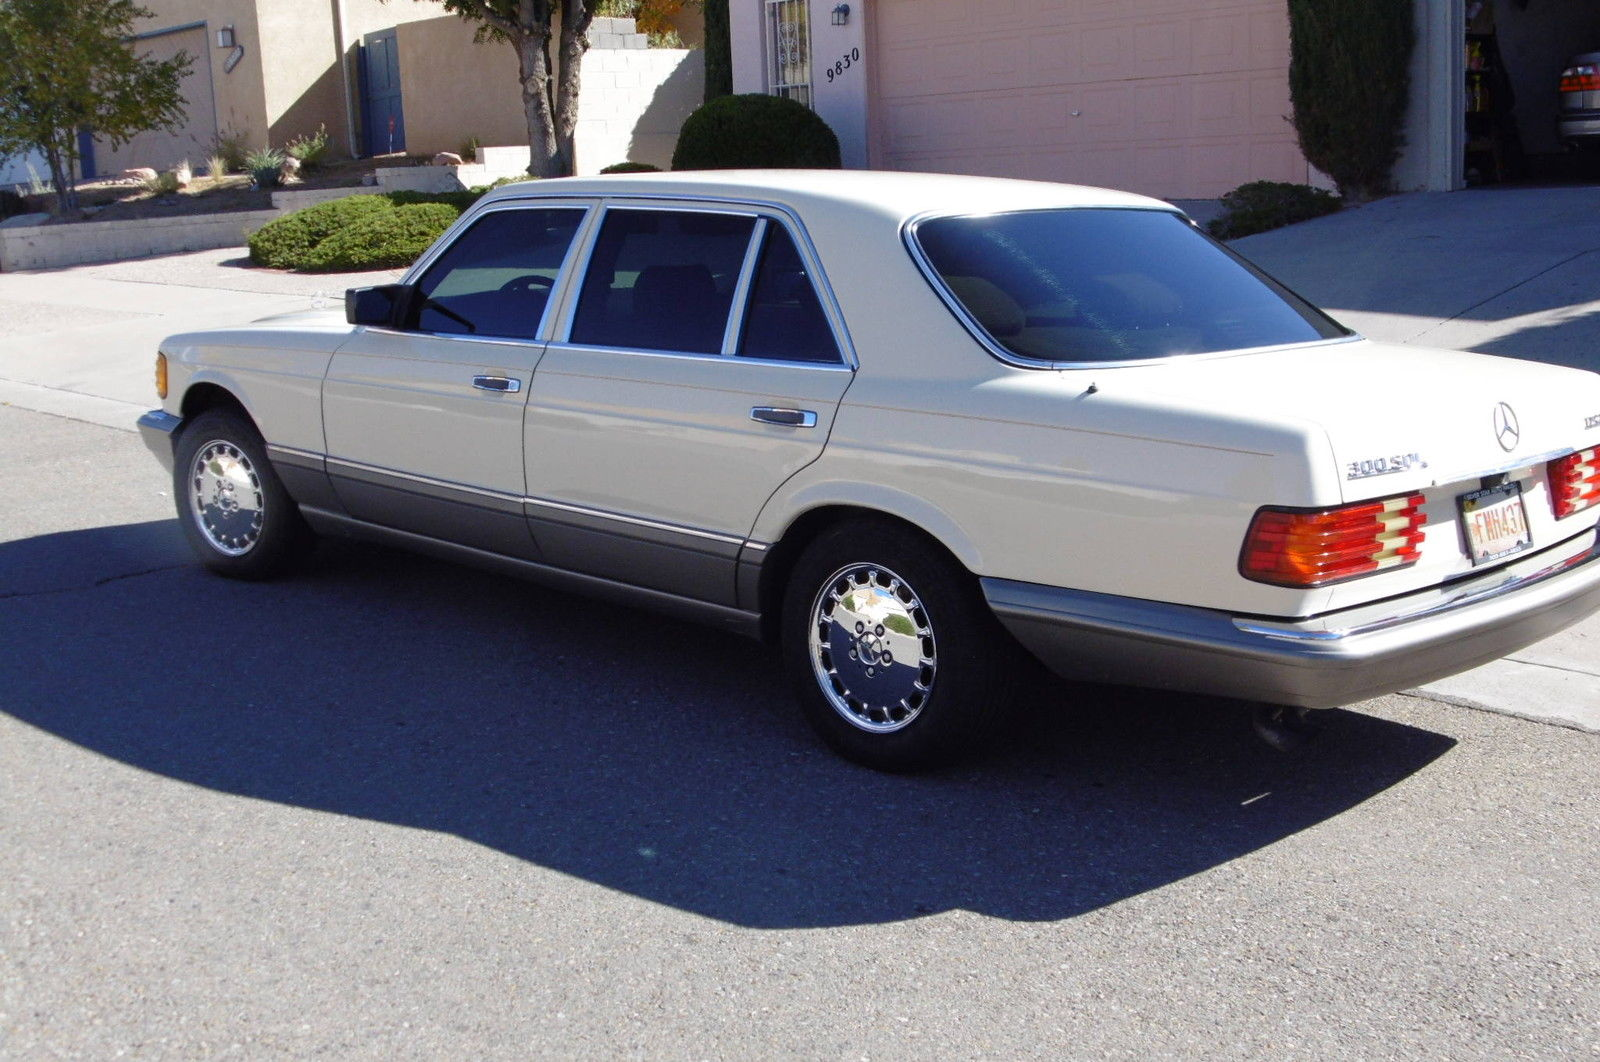 1987 mercedes benz 300sdl ivory with palamino leather for 1987 mercedes benz 300sdl